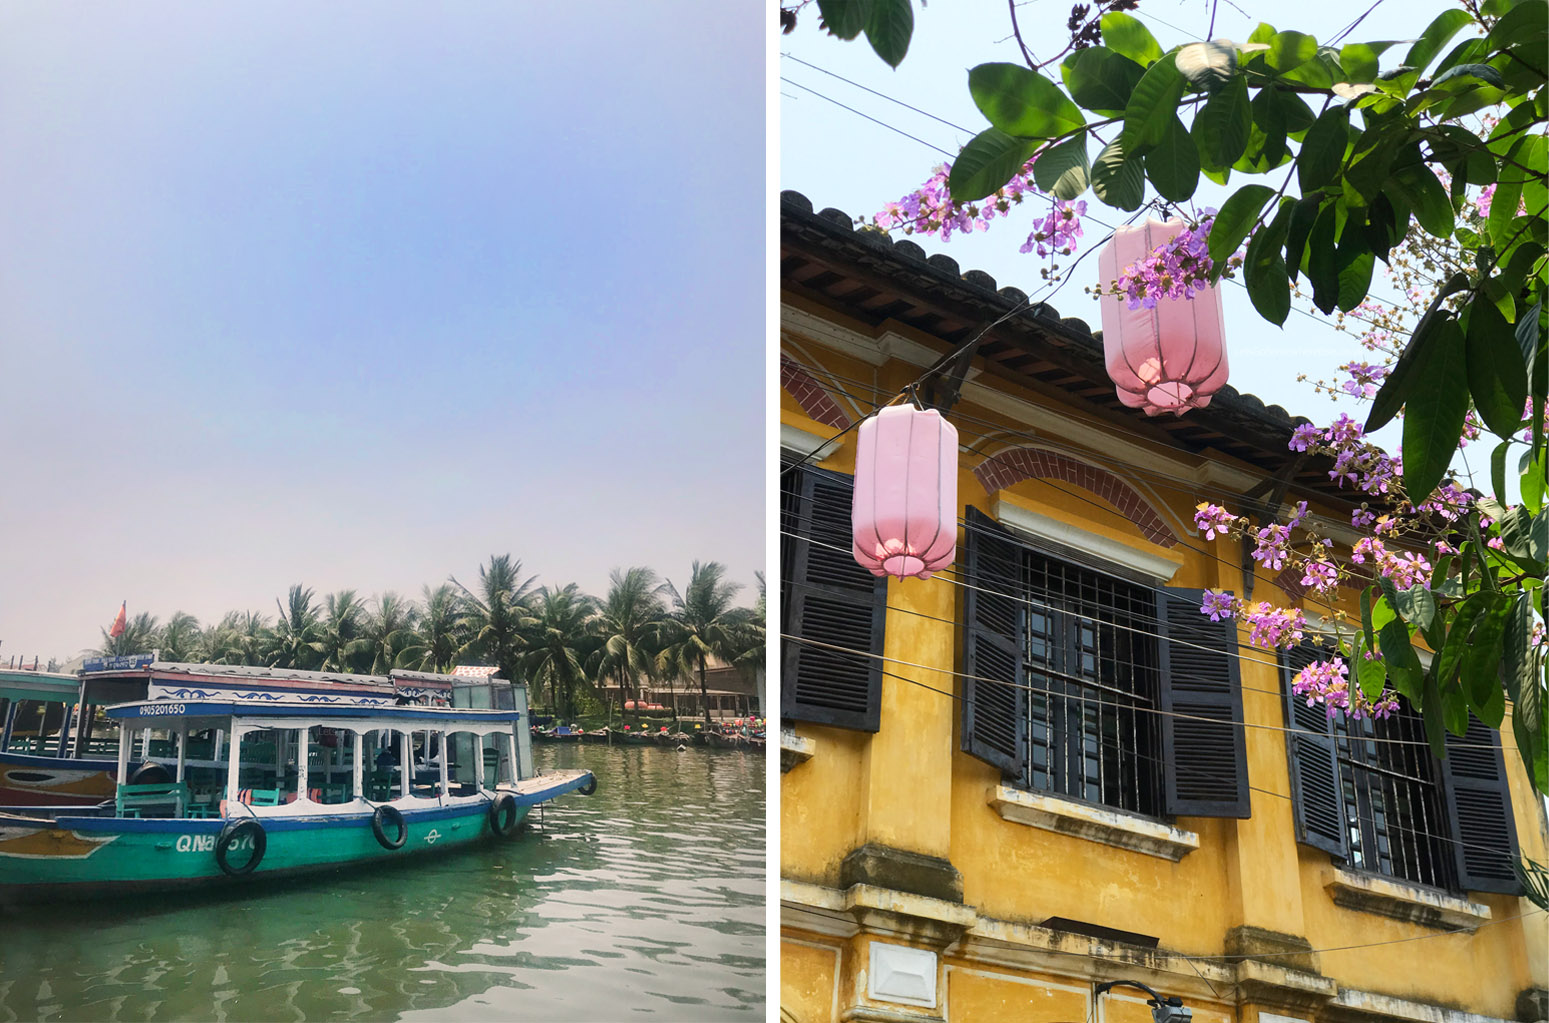 Hoi An (Hội An) Traditional Houses and River Boat